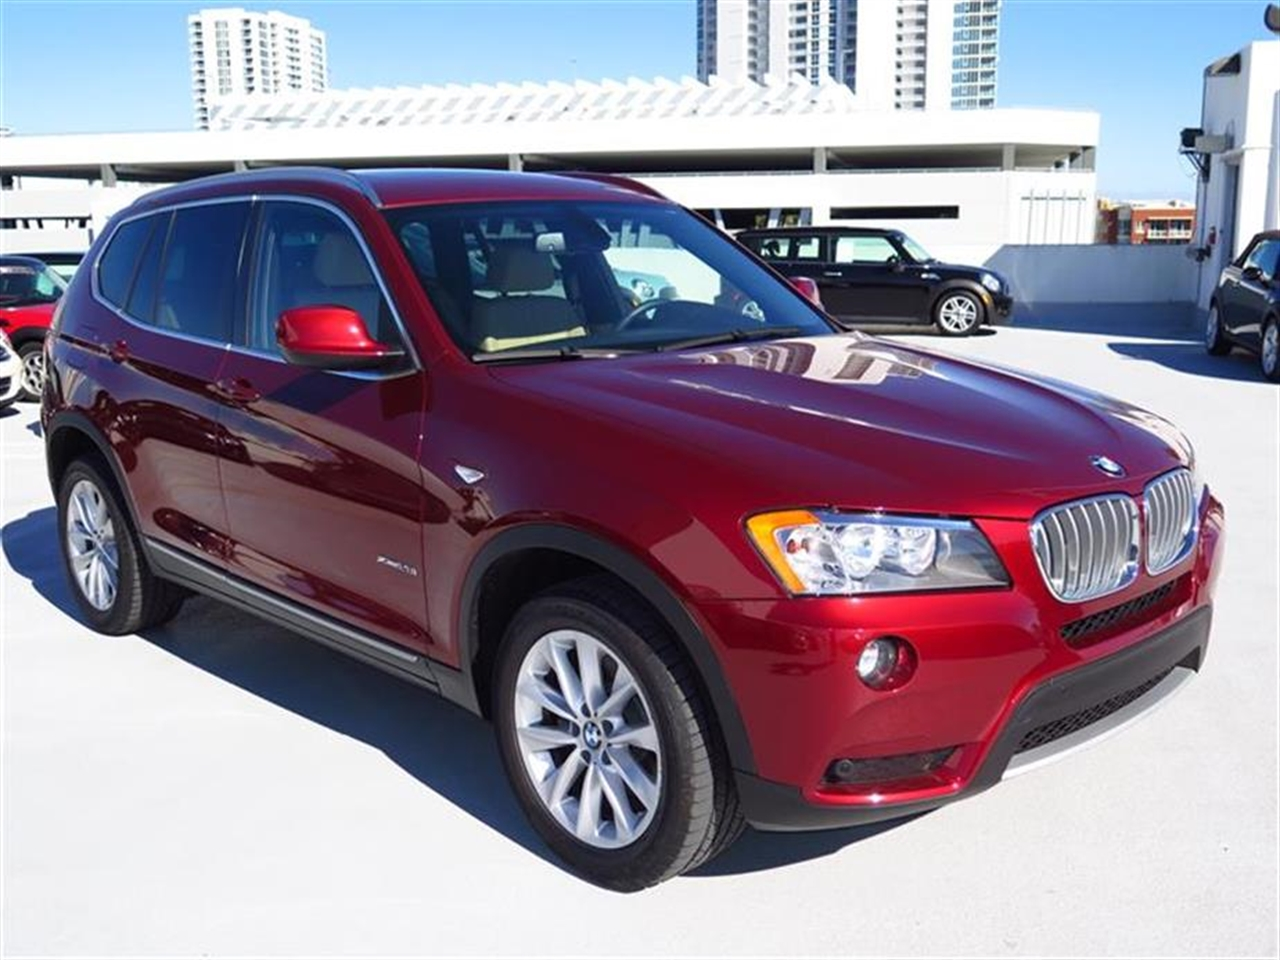 2012 BMW X3 AWD 4dr 28i 12683 miles 3-spoke leather-wrapped multi-function sport steering wheel wi